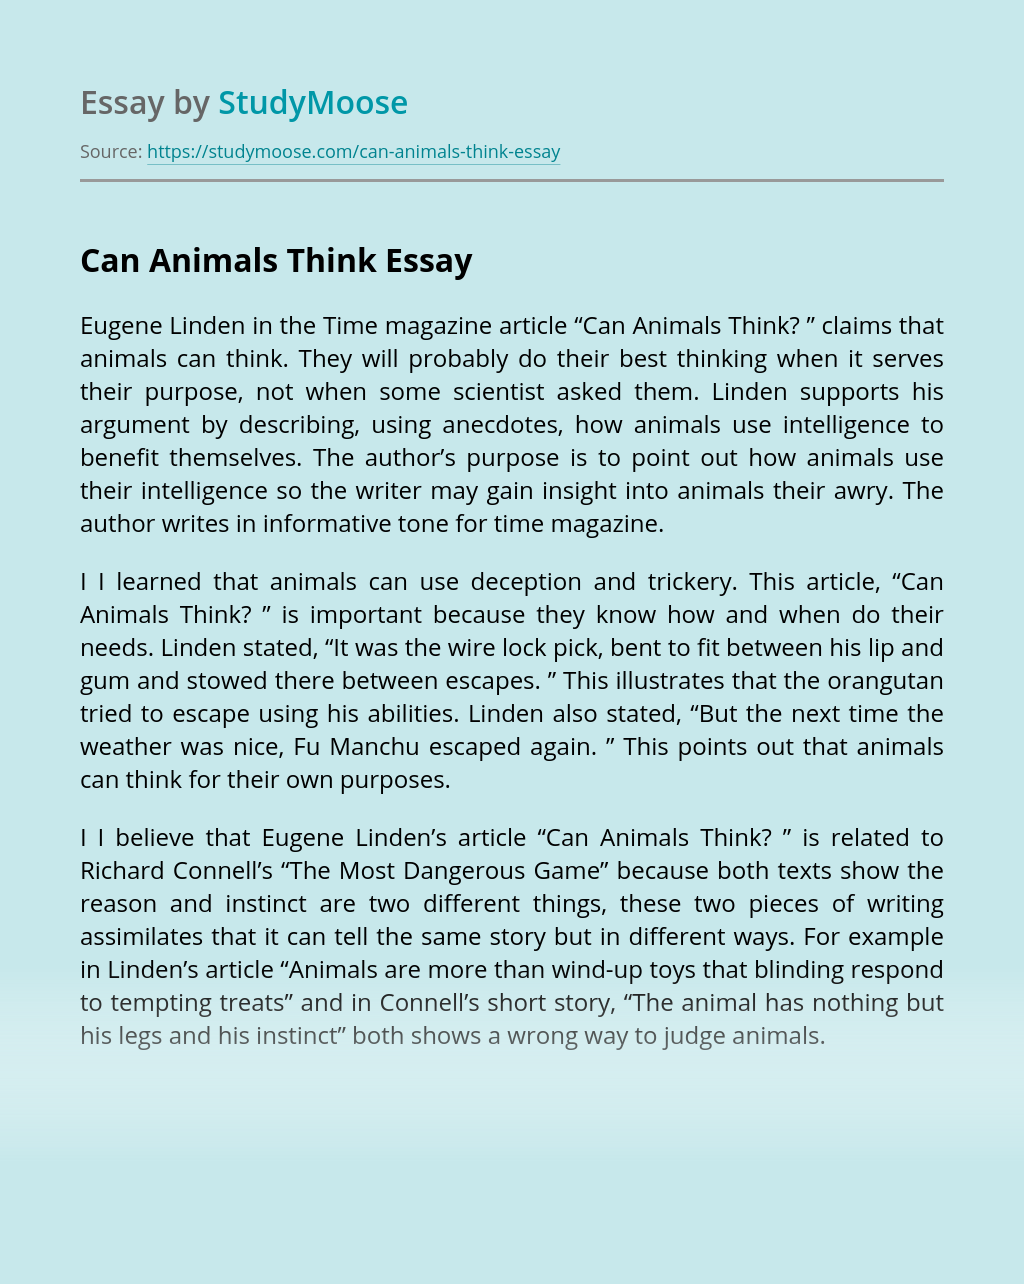 Can Animals Think